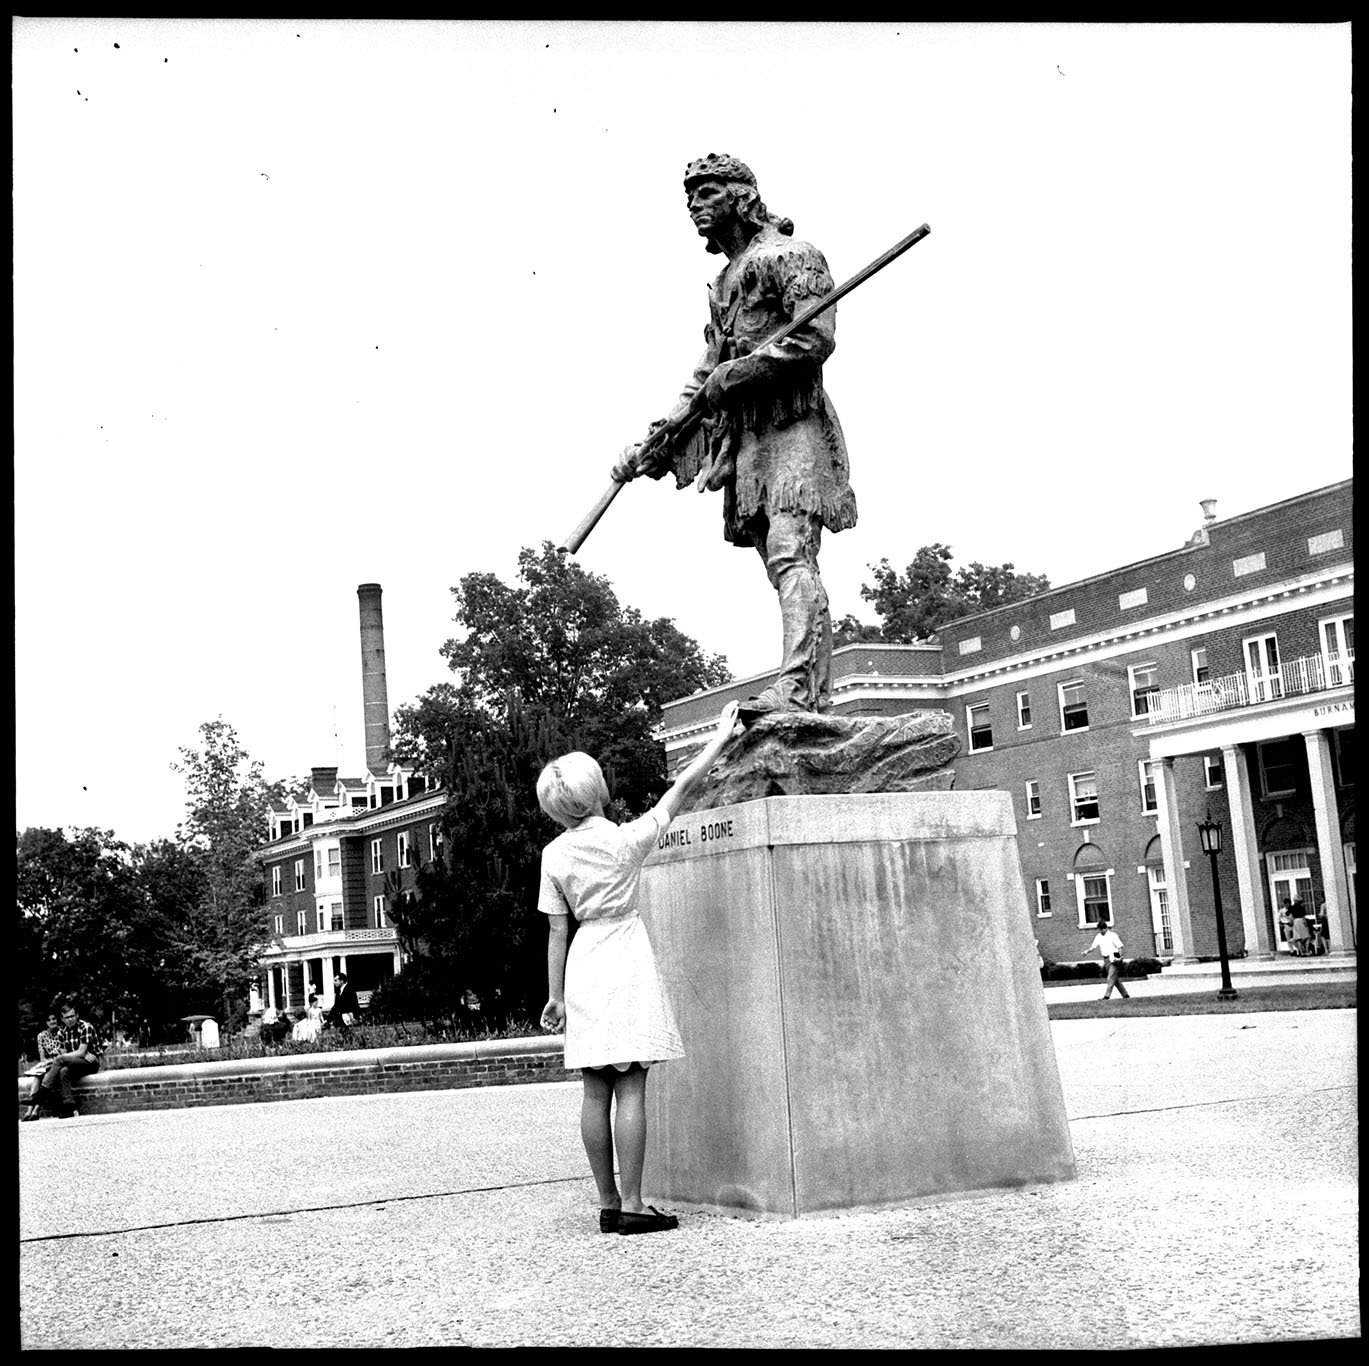 Rubbing the Daniel Boone statue's toe for good luck, 1967. EKU Negative Collection.